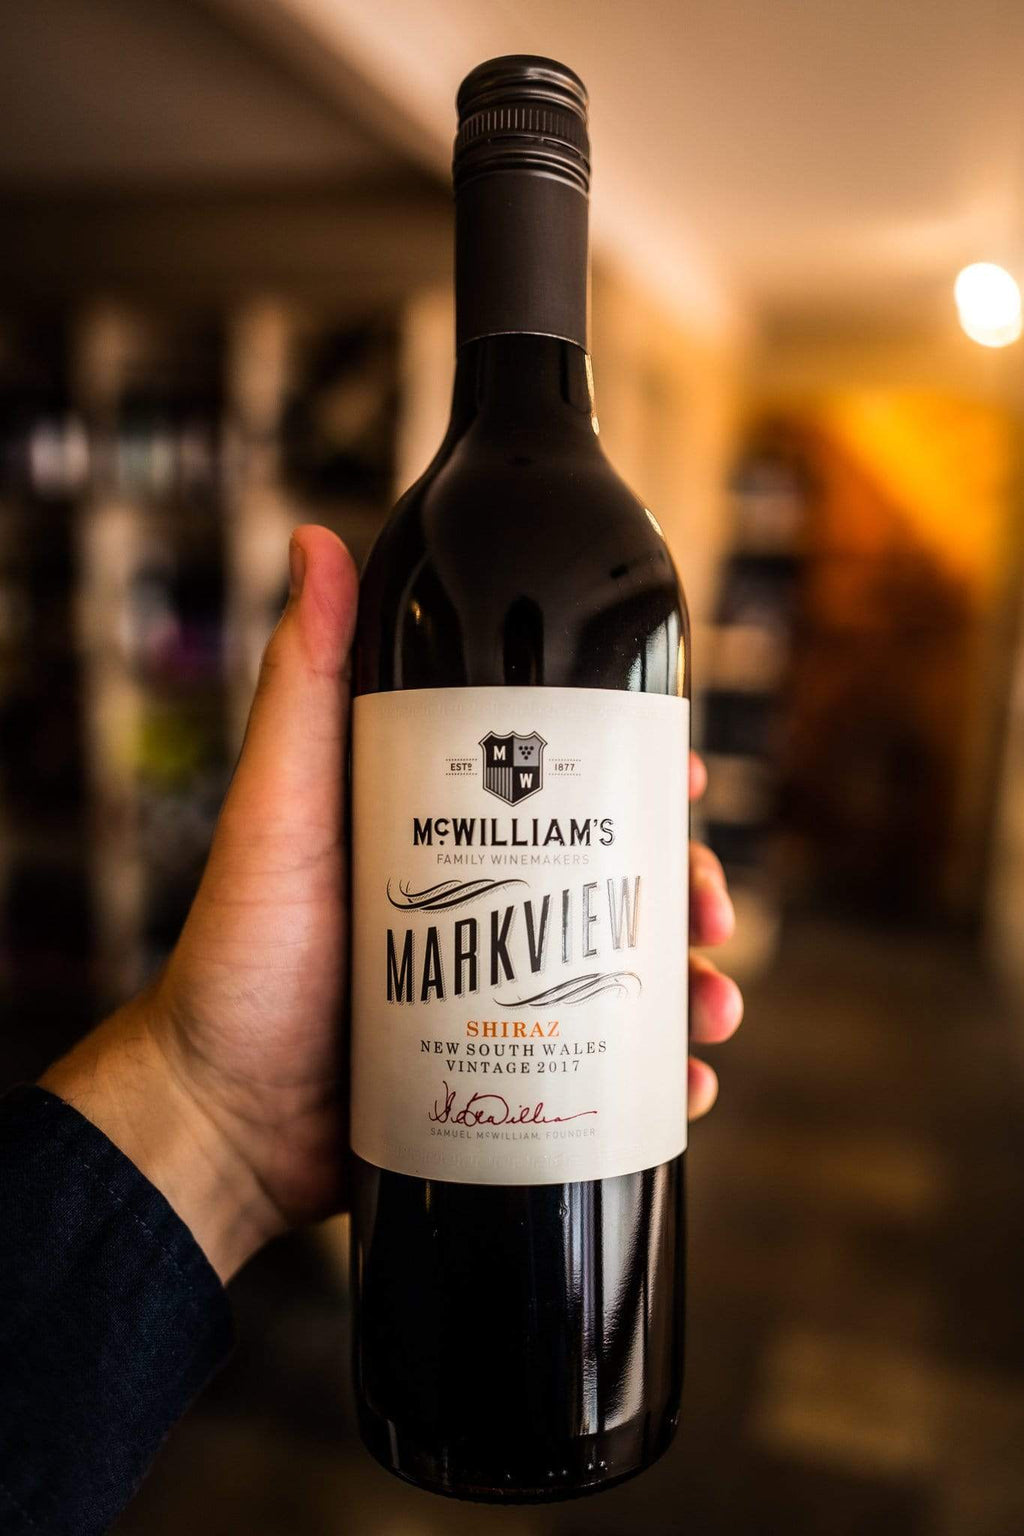 McWilliams Rødvin Markview Shiraz 2017